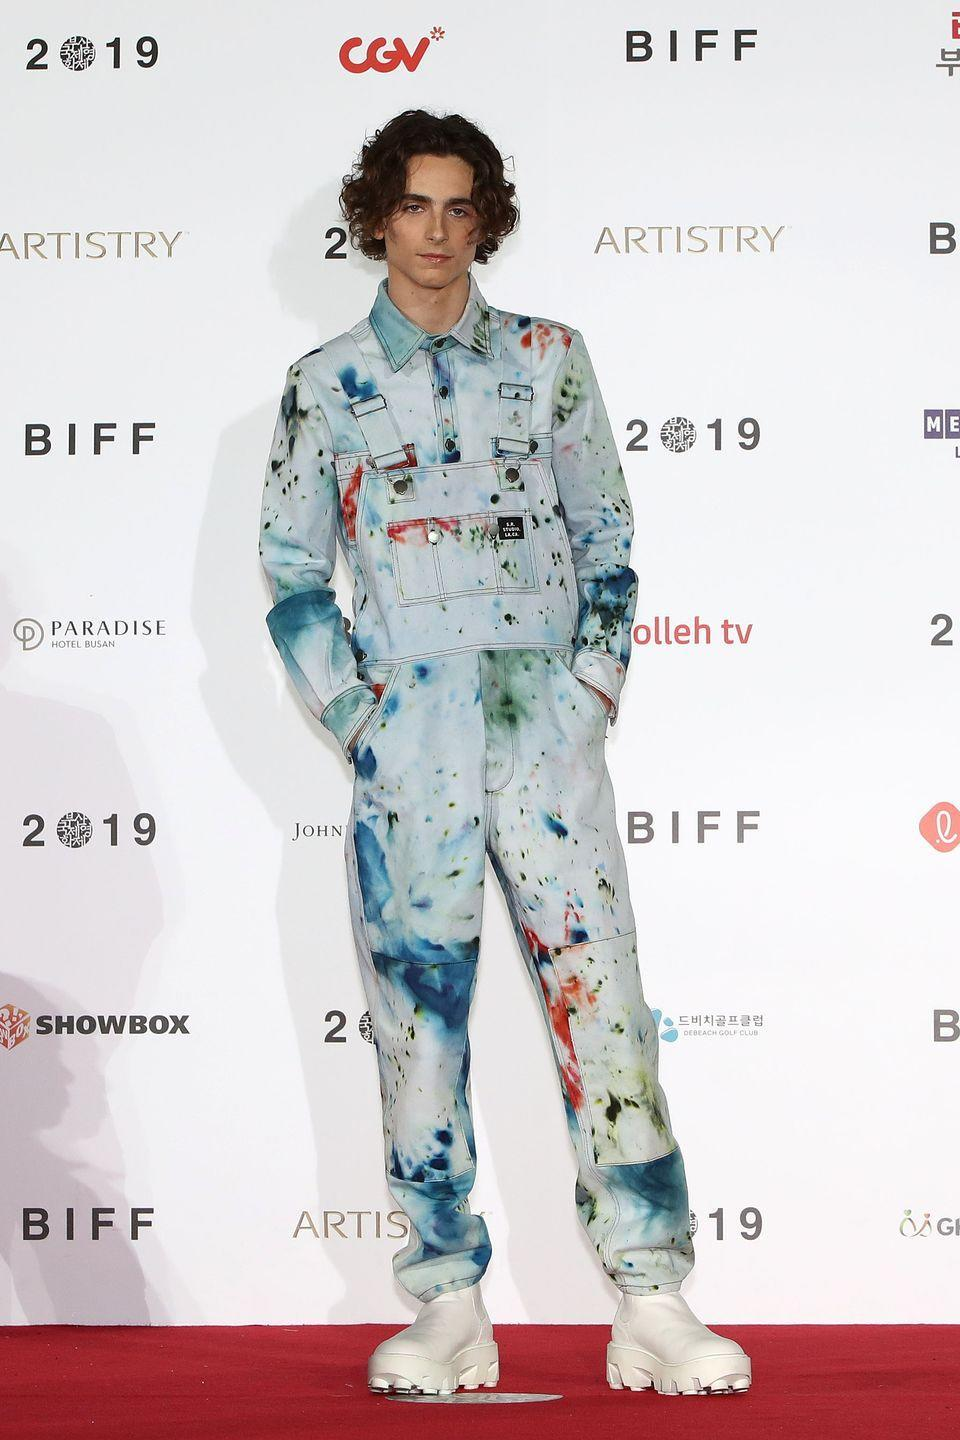 <p>Fixing boilers on Ganymede since 2019's Busan International Film Festival, Chalamet is now available to redecorate hologram rooms, cloning facilities and airlocks. Call now for a quote.</p>